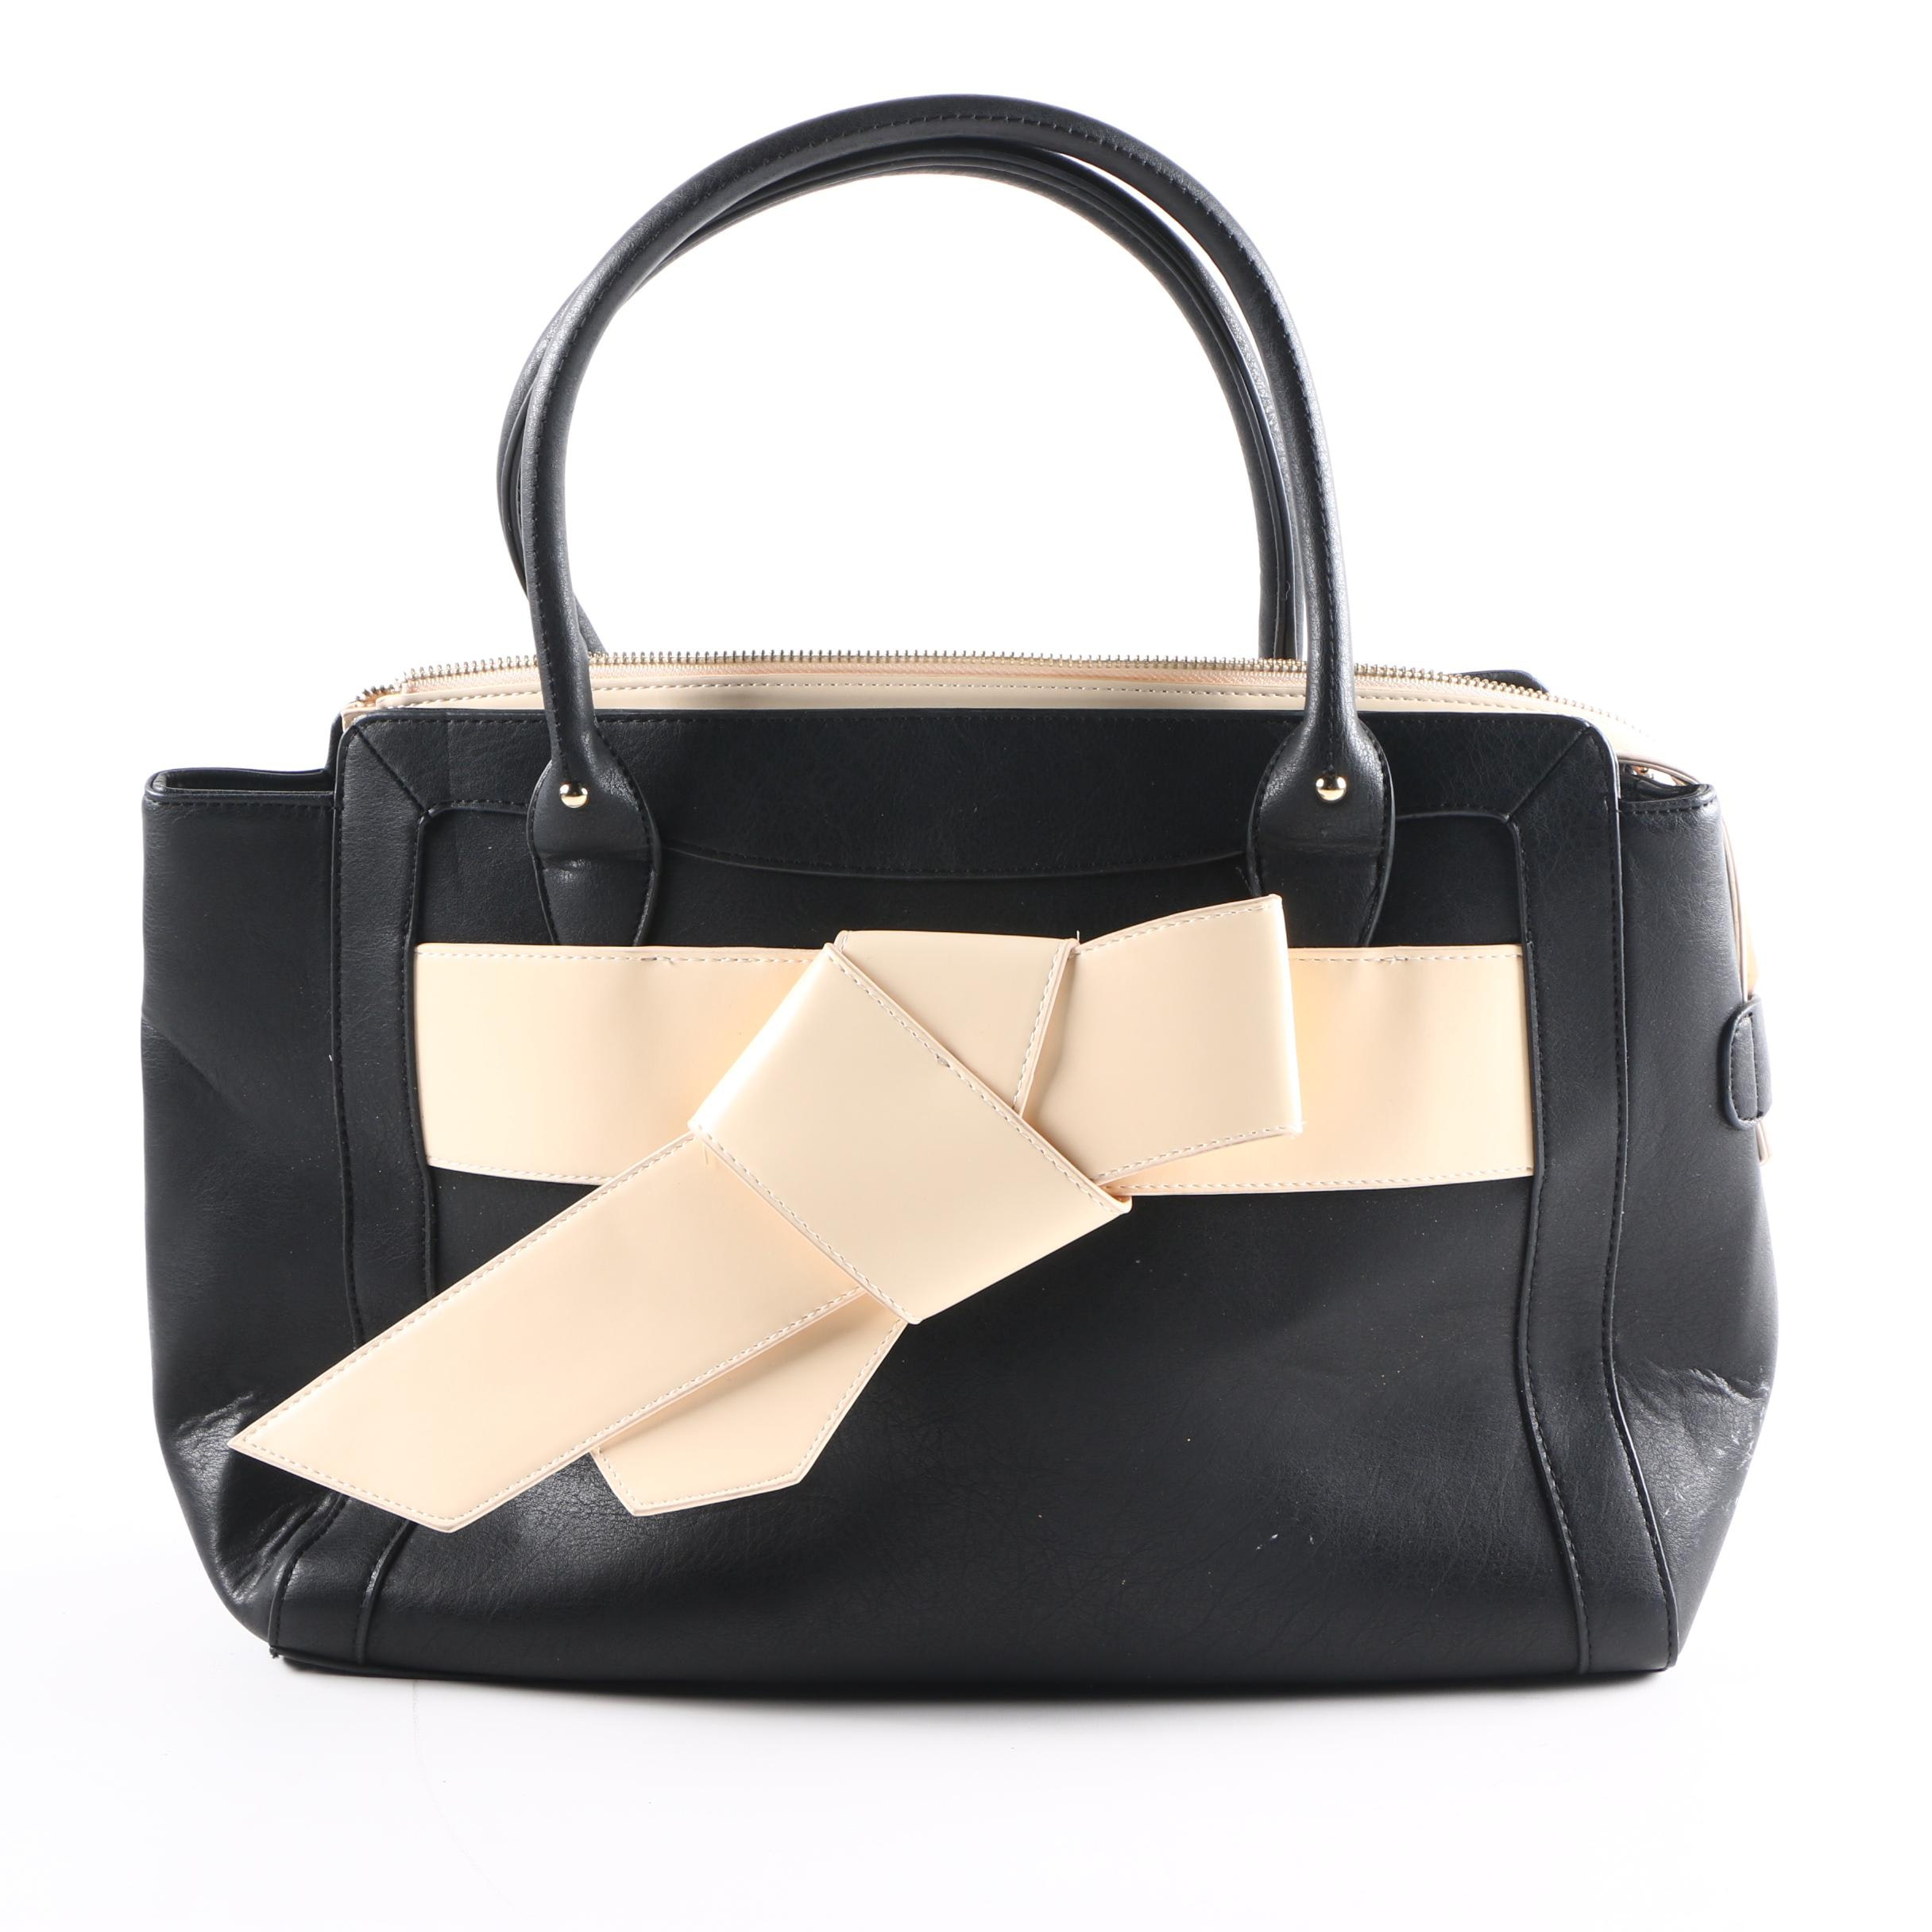 Just Fab Faux Leather Handbag